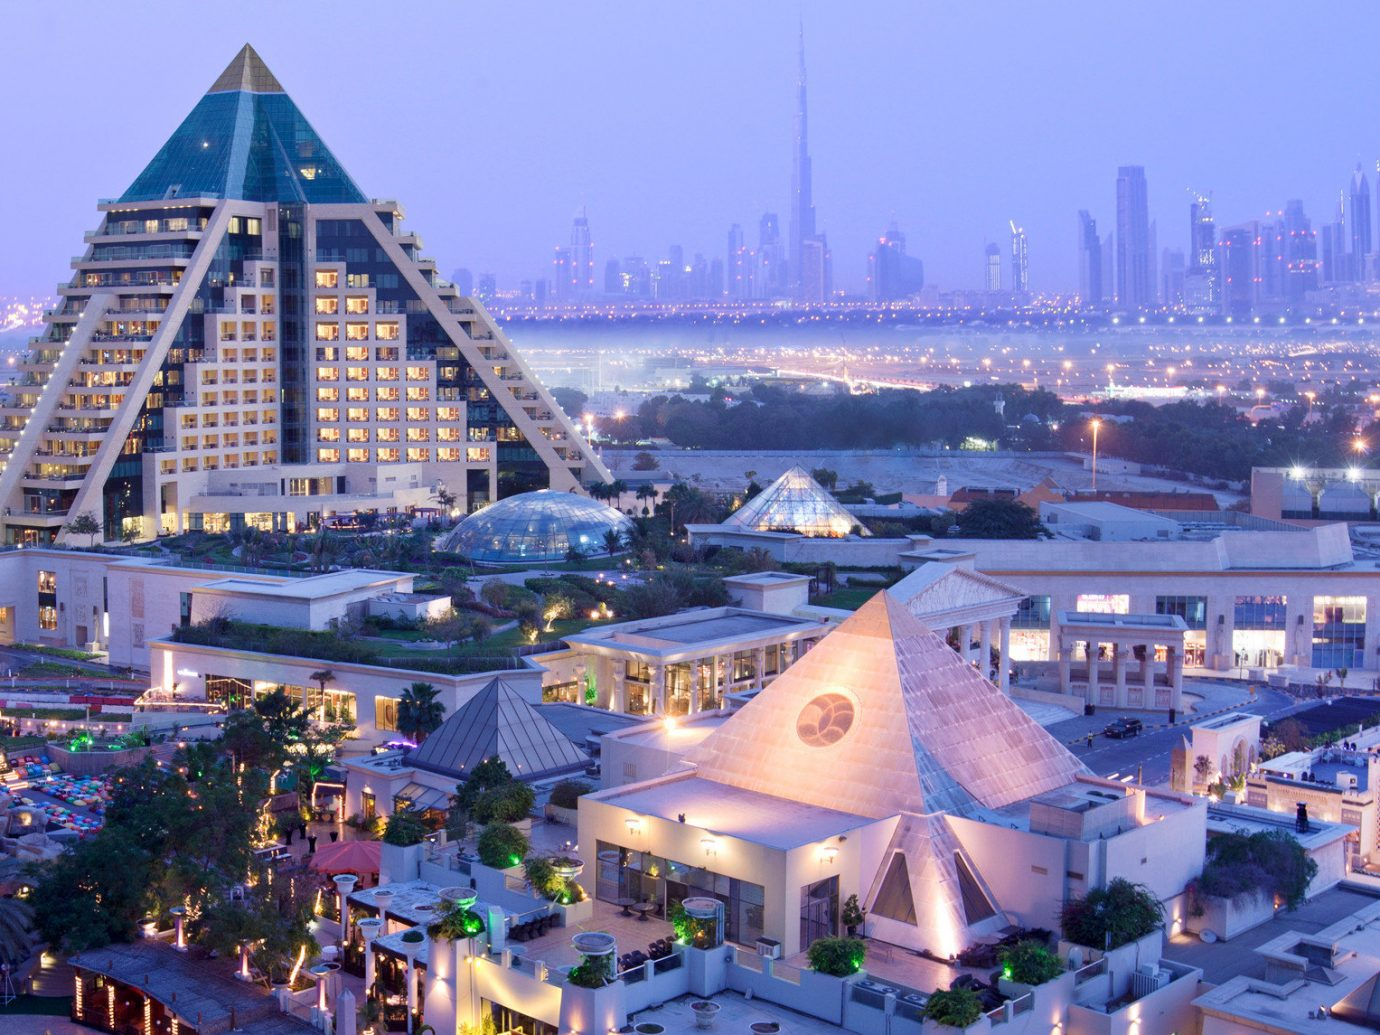 Architecture Buildings City Dubai Exterior Hotels Luxury Travel Middle East outdoor sky landmark building cityscape Town metropolis human settlement tourism Resort skyline Downtown tower day several